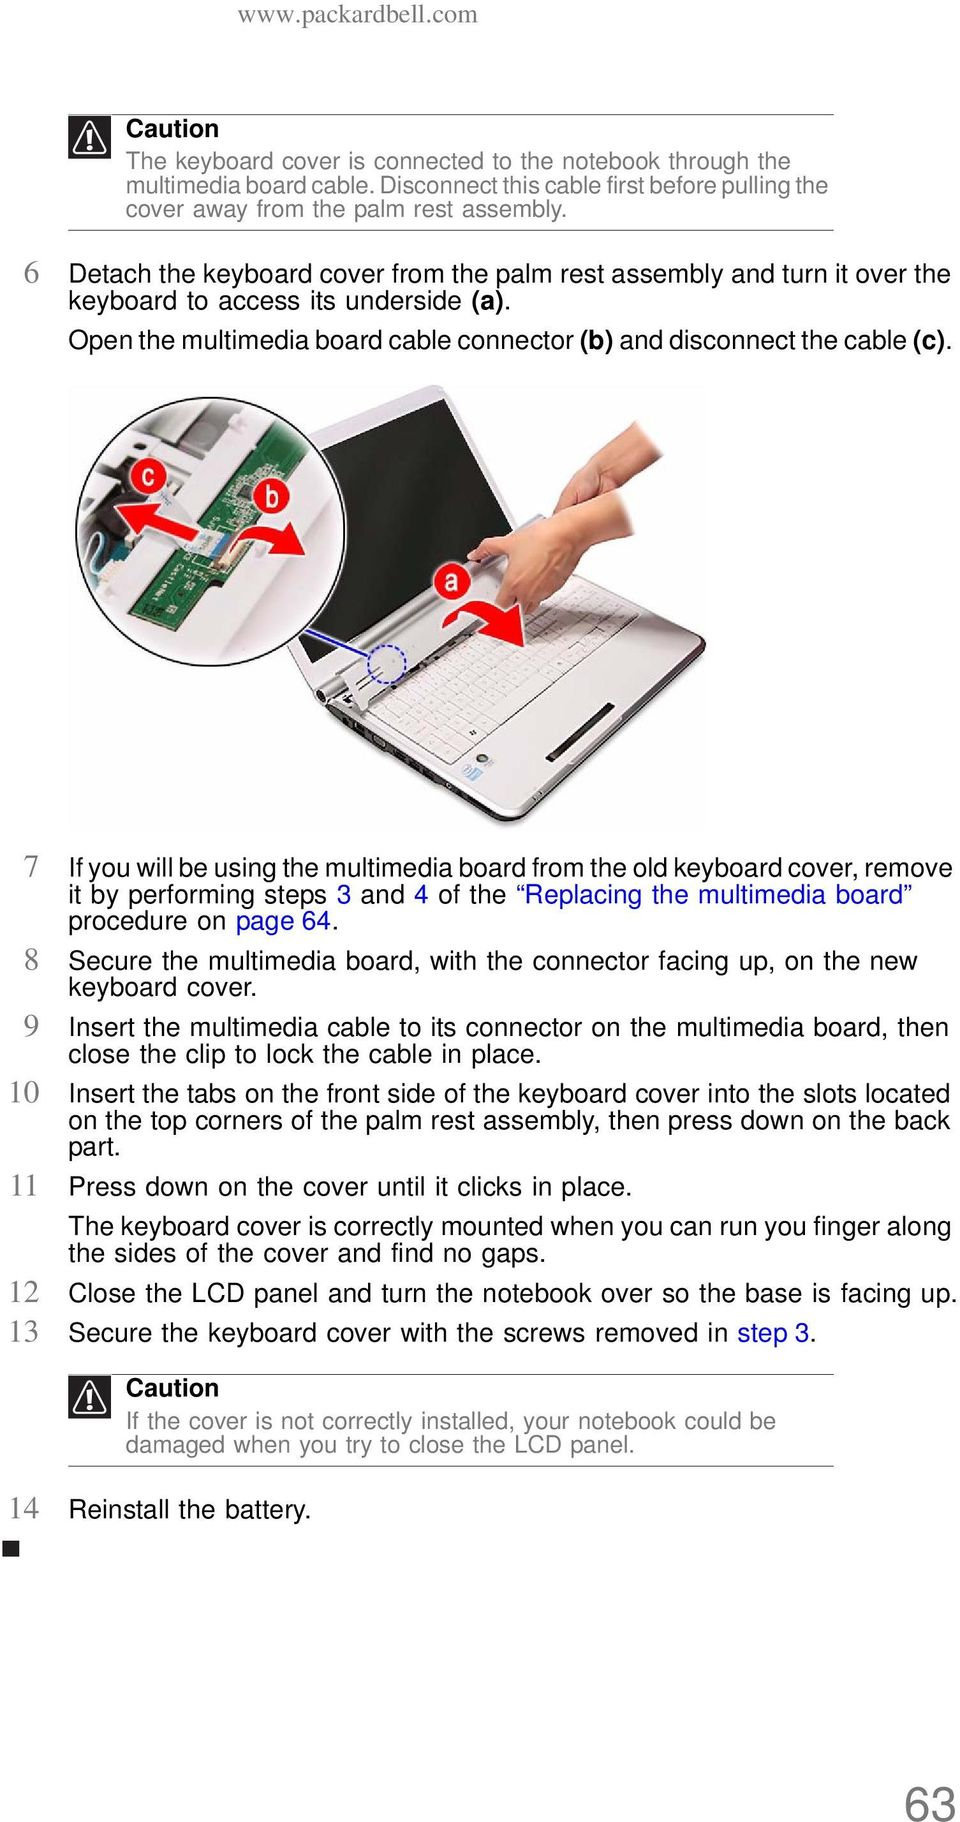 7 If you will be using the multimedia board from the old keyboard cover, remove it by performing steps 3 and 4 of the Replacing the multimedia board procedure on page 64.